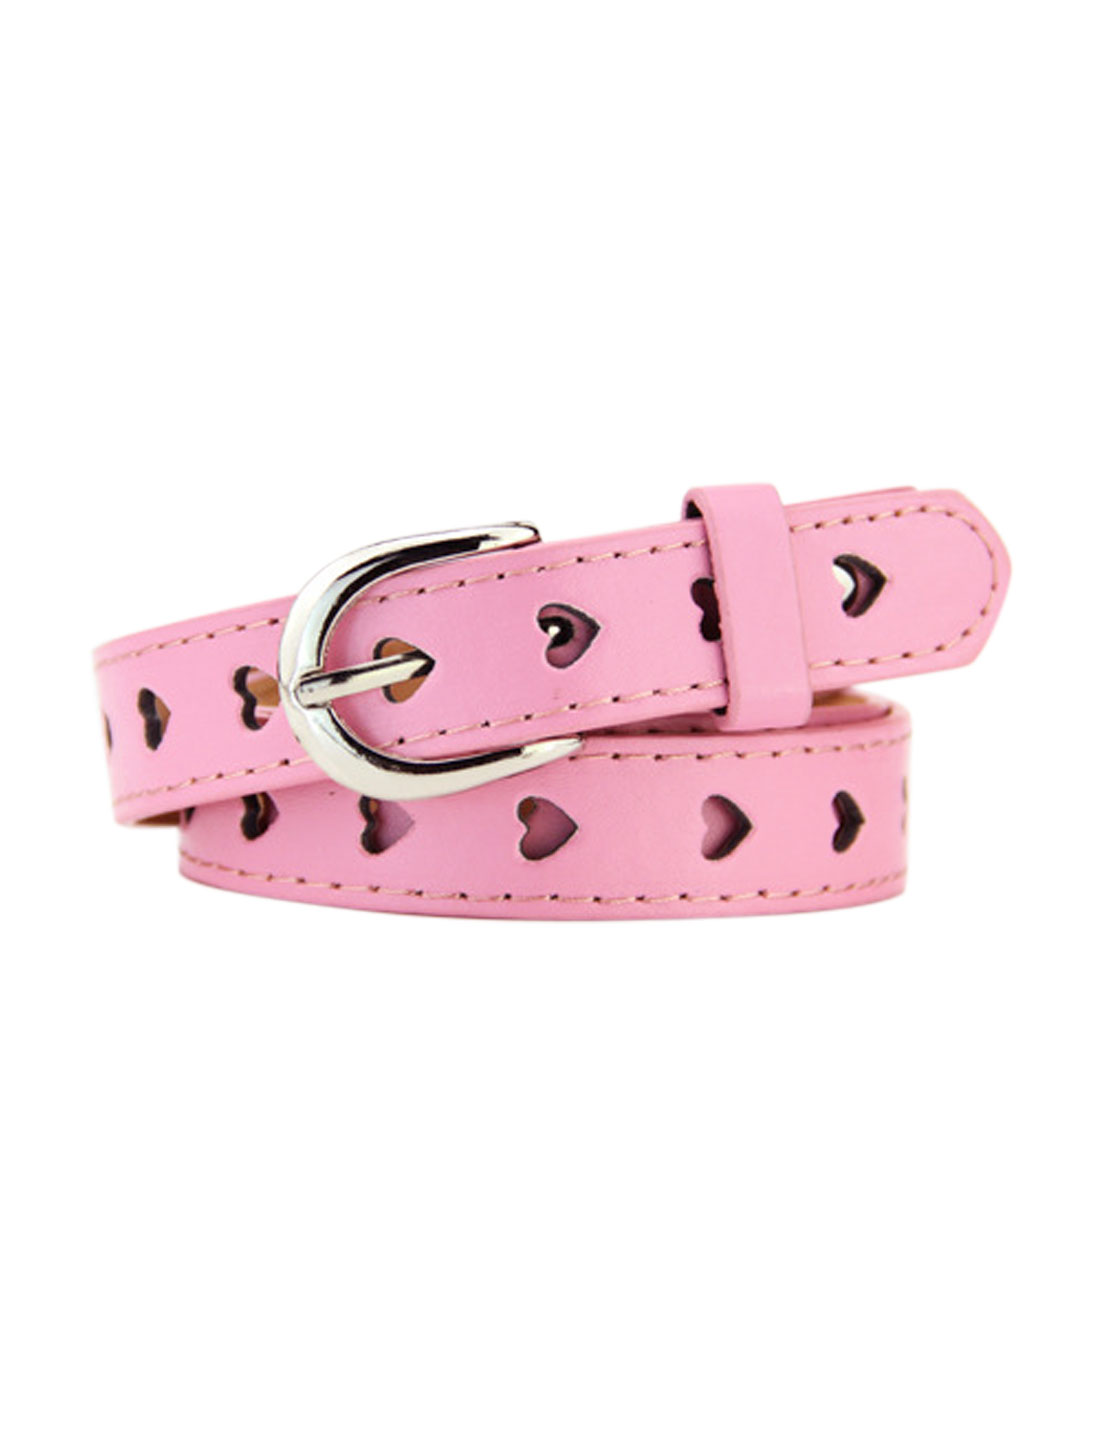 Women Single Prong Buckle Hollow Heart PU Waist Belt Pink